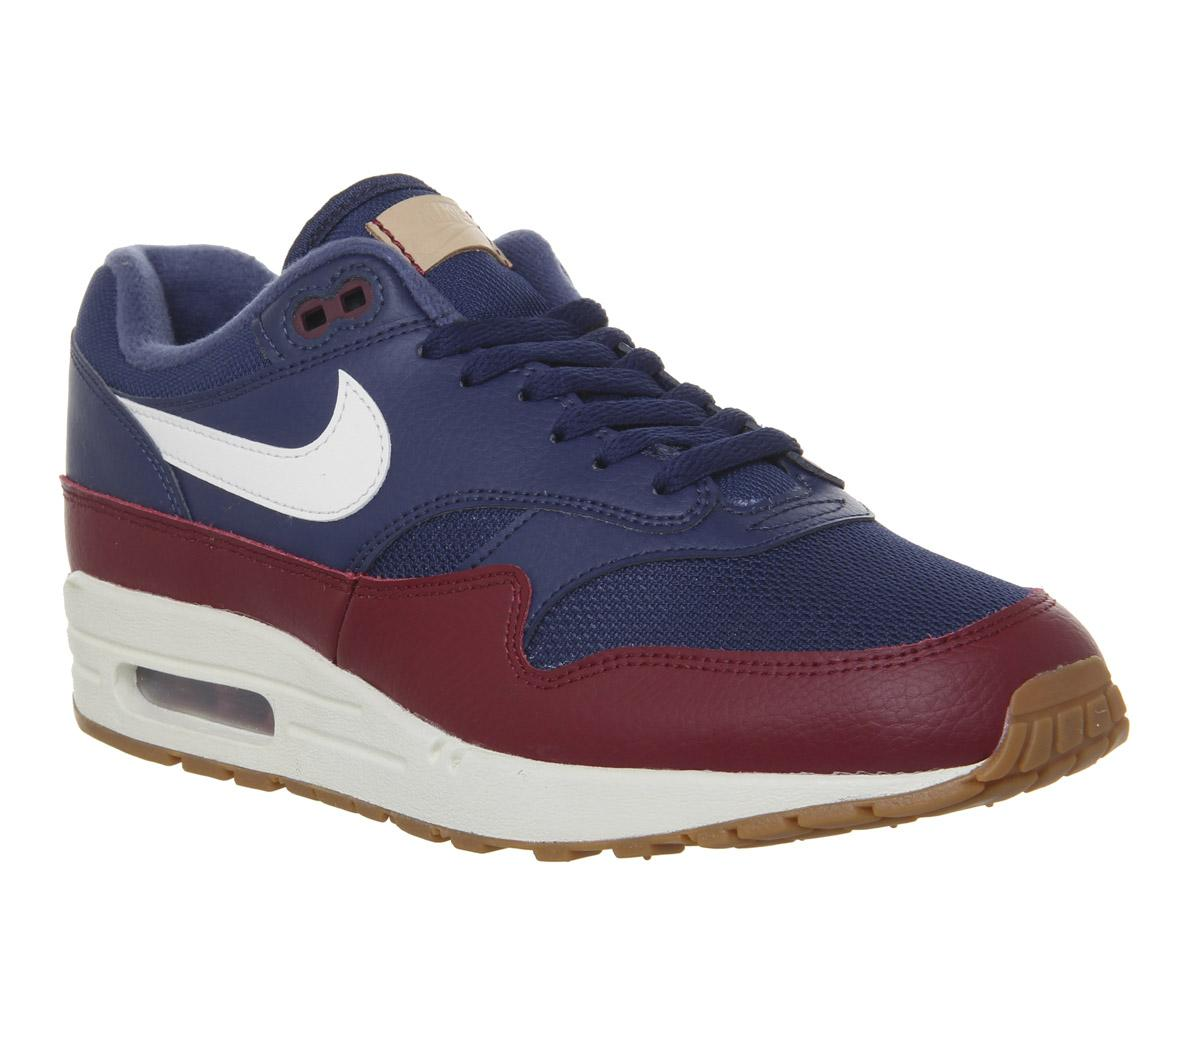 Team Gum 1 Red Max Navy His Trainers Air Sail Nike sBhCtdxQr